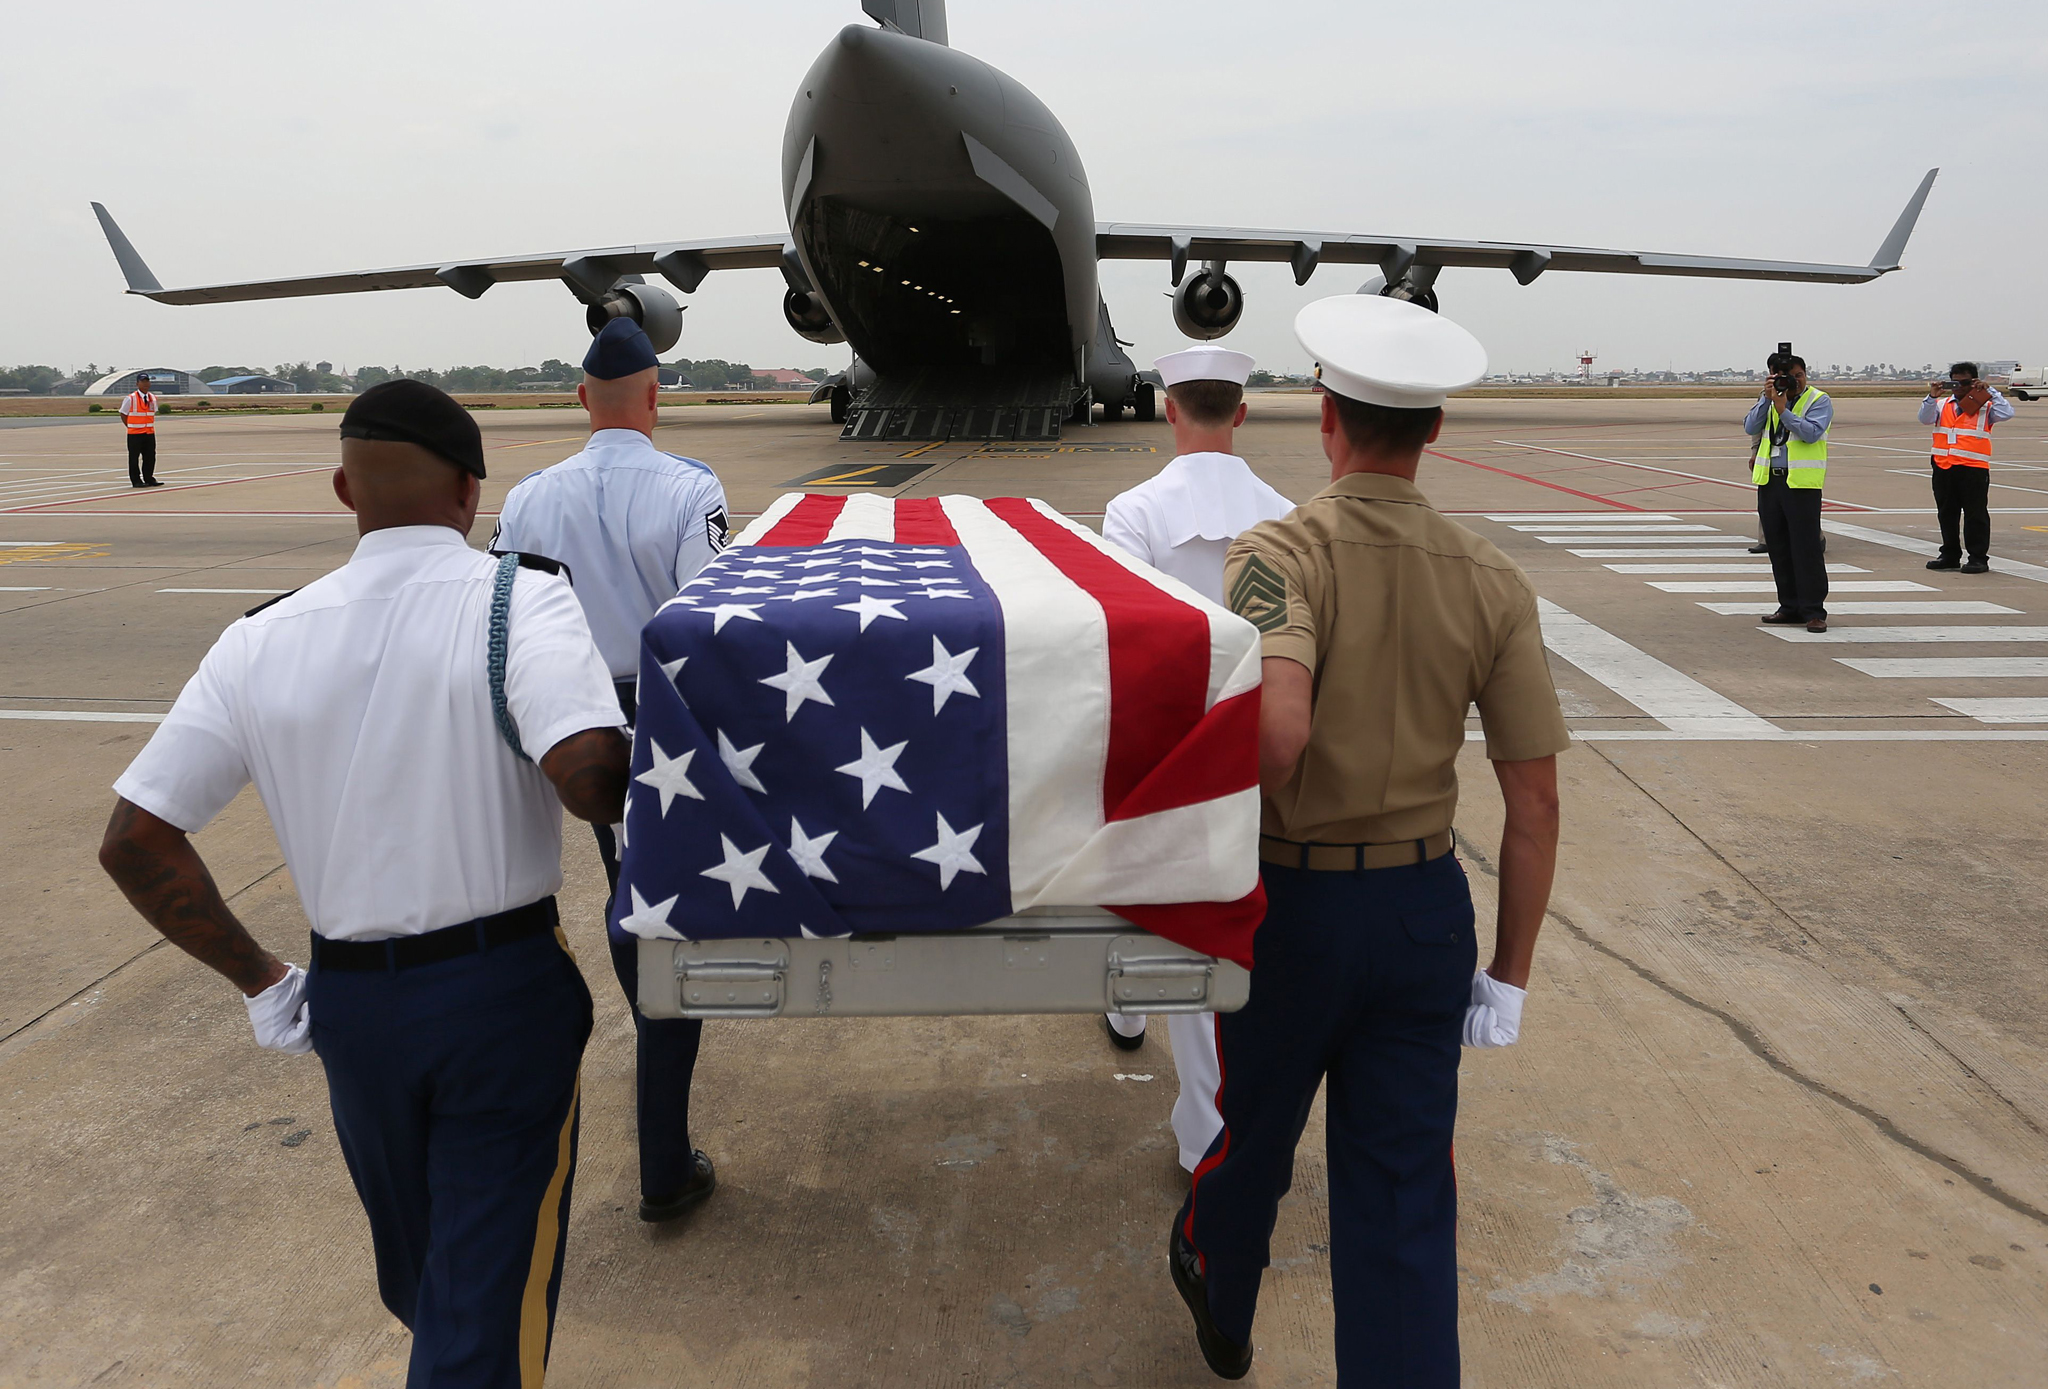 US soldiers carry a flag-draped coffin containing the remains believed to be of a US soldier during a repatriation ceremony at Phnom Penh International Airport.  Remains believed to be those of three US servicemen killed in Cambodia more than four decades ago during the Vietnam War were repatriated for identification in the United States